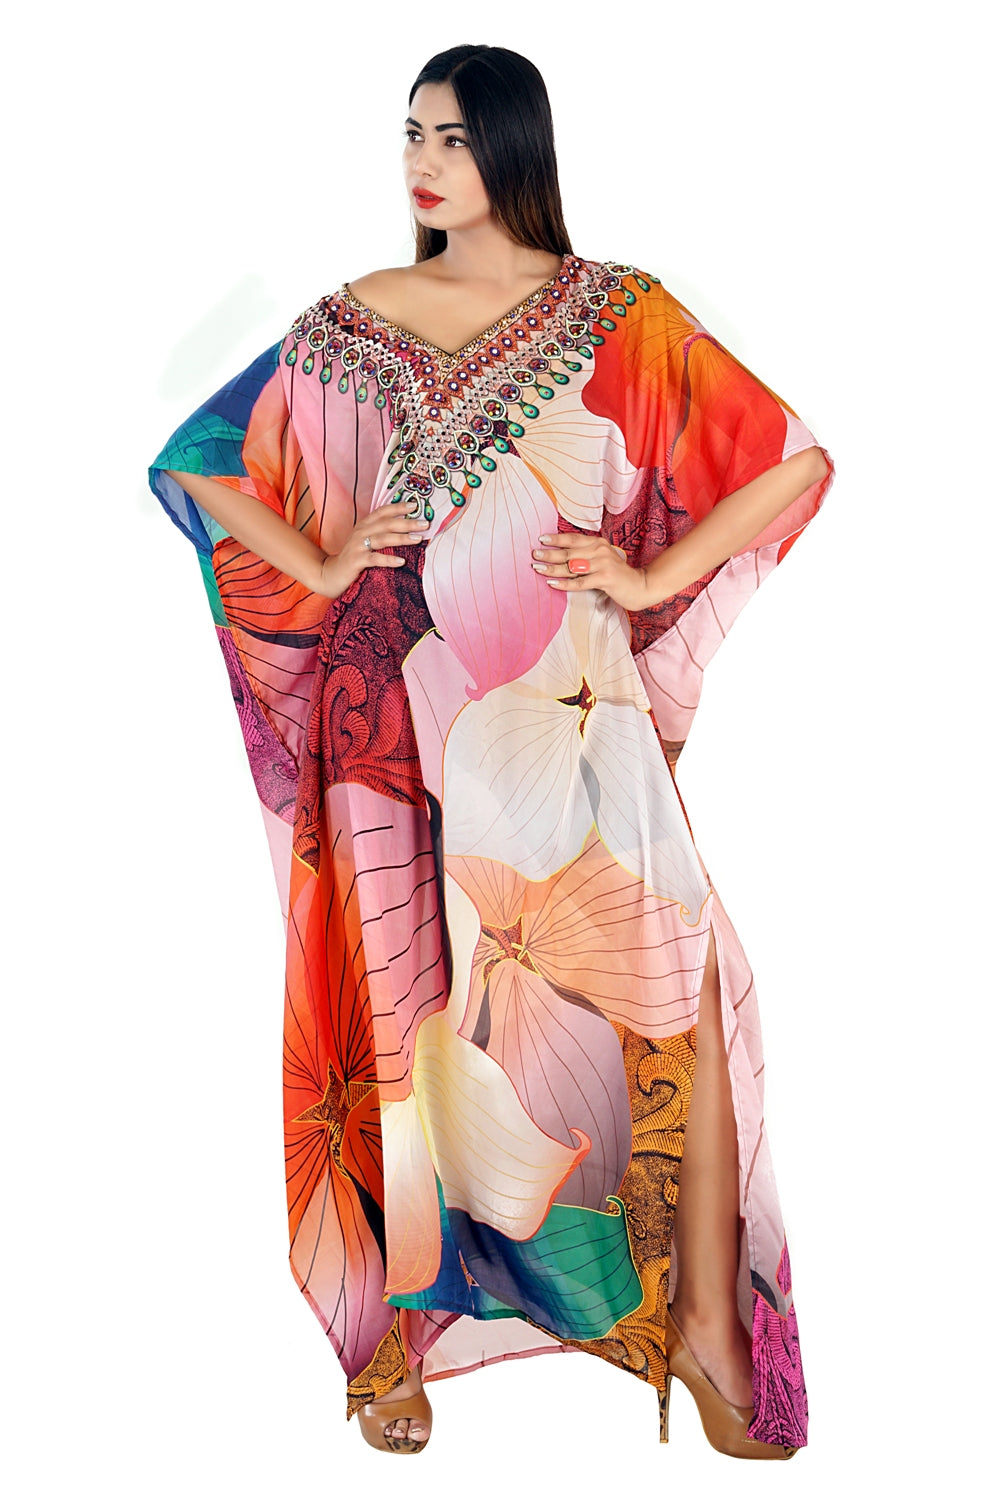 High quality Abstract Floral printed Maxi kaftan dress with beads embedded over Neckline - Silk kaftan